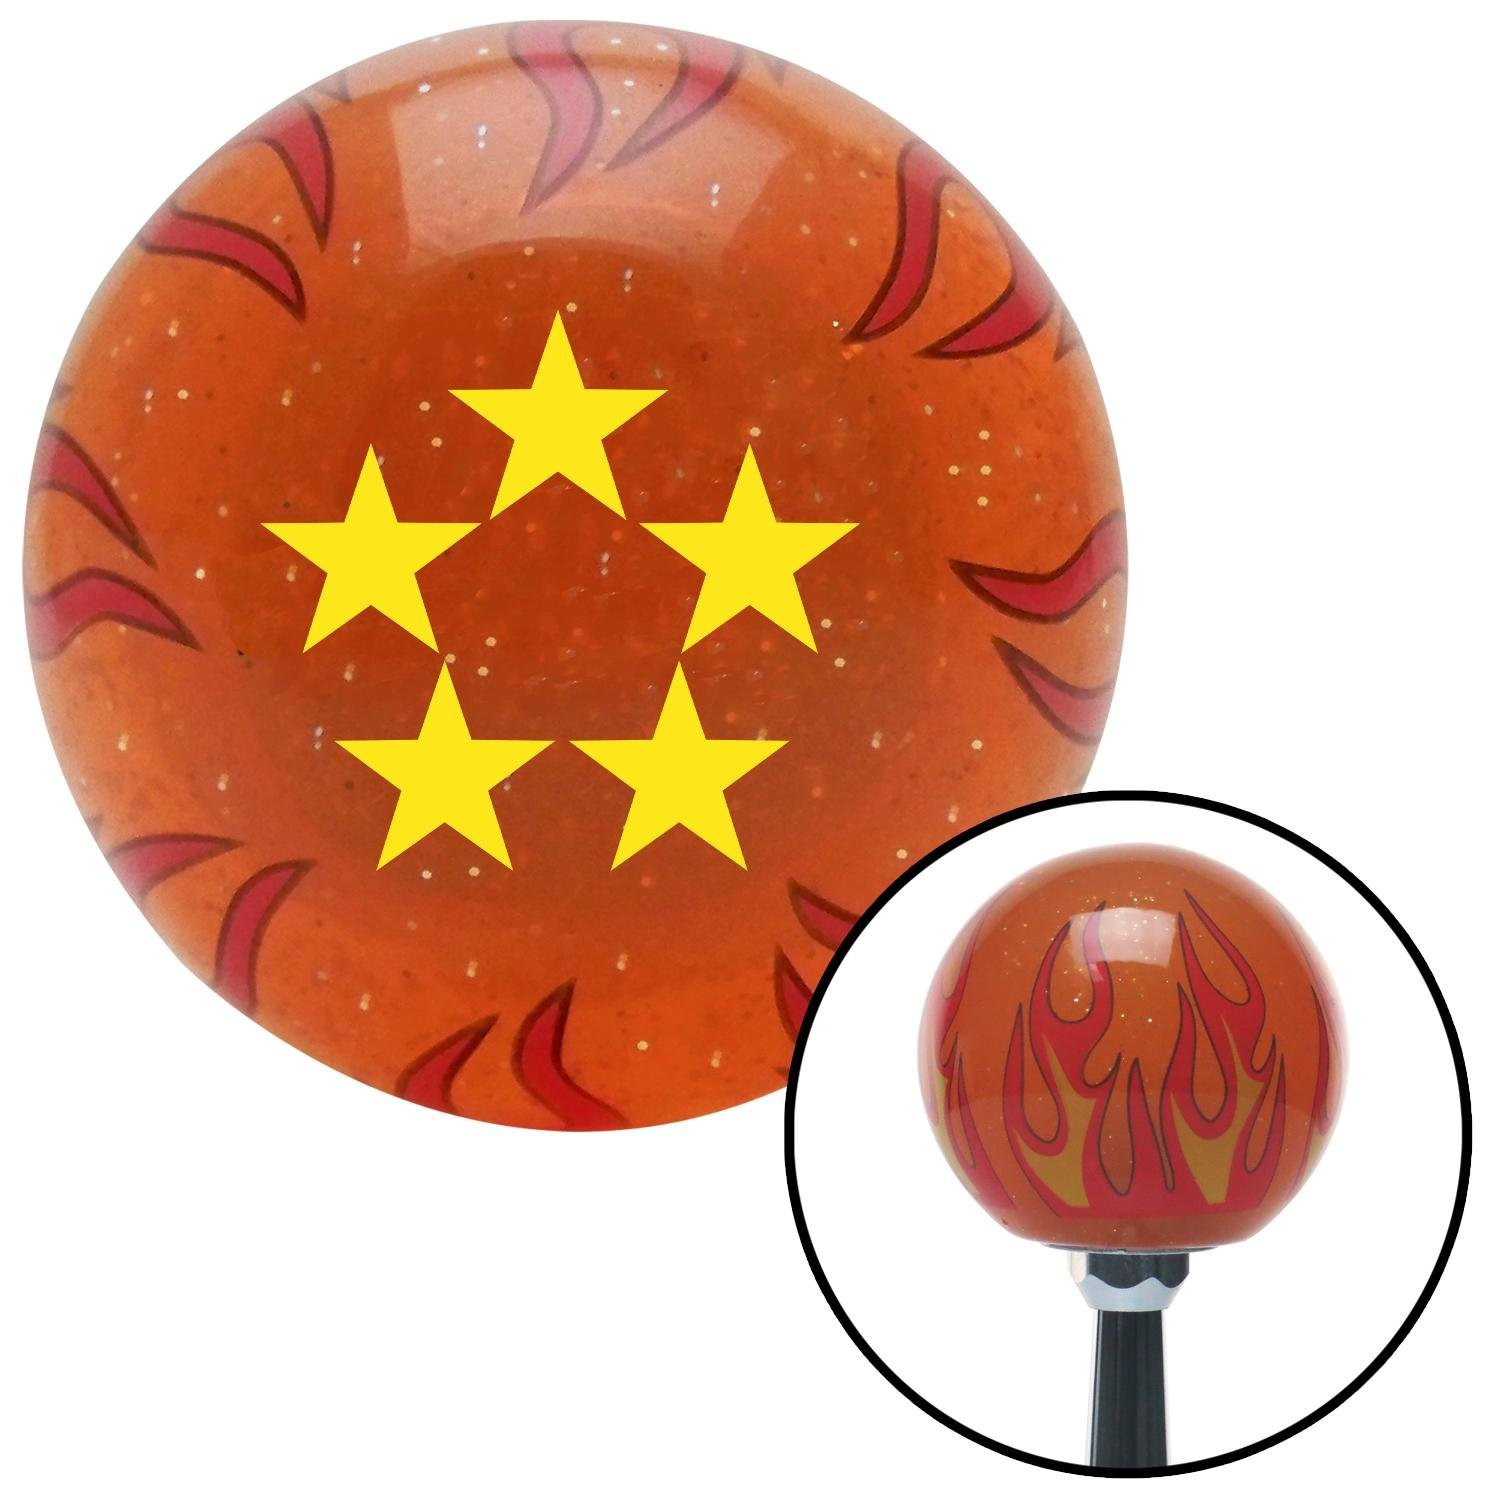 American Shifter 257843 Orange Flame Metal Flake Shift Knob with M16 x 1.5 Insert Yellow Fleet Admiral